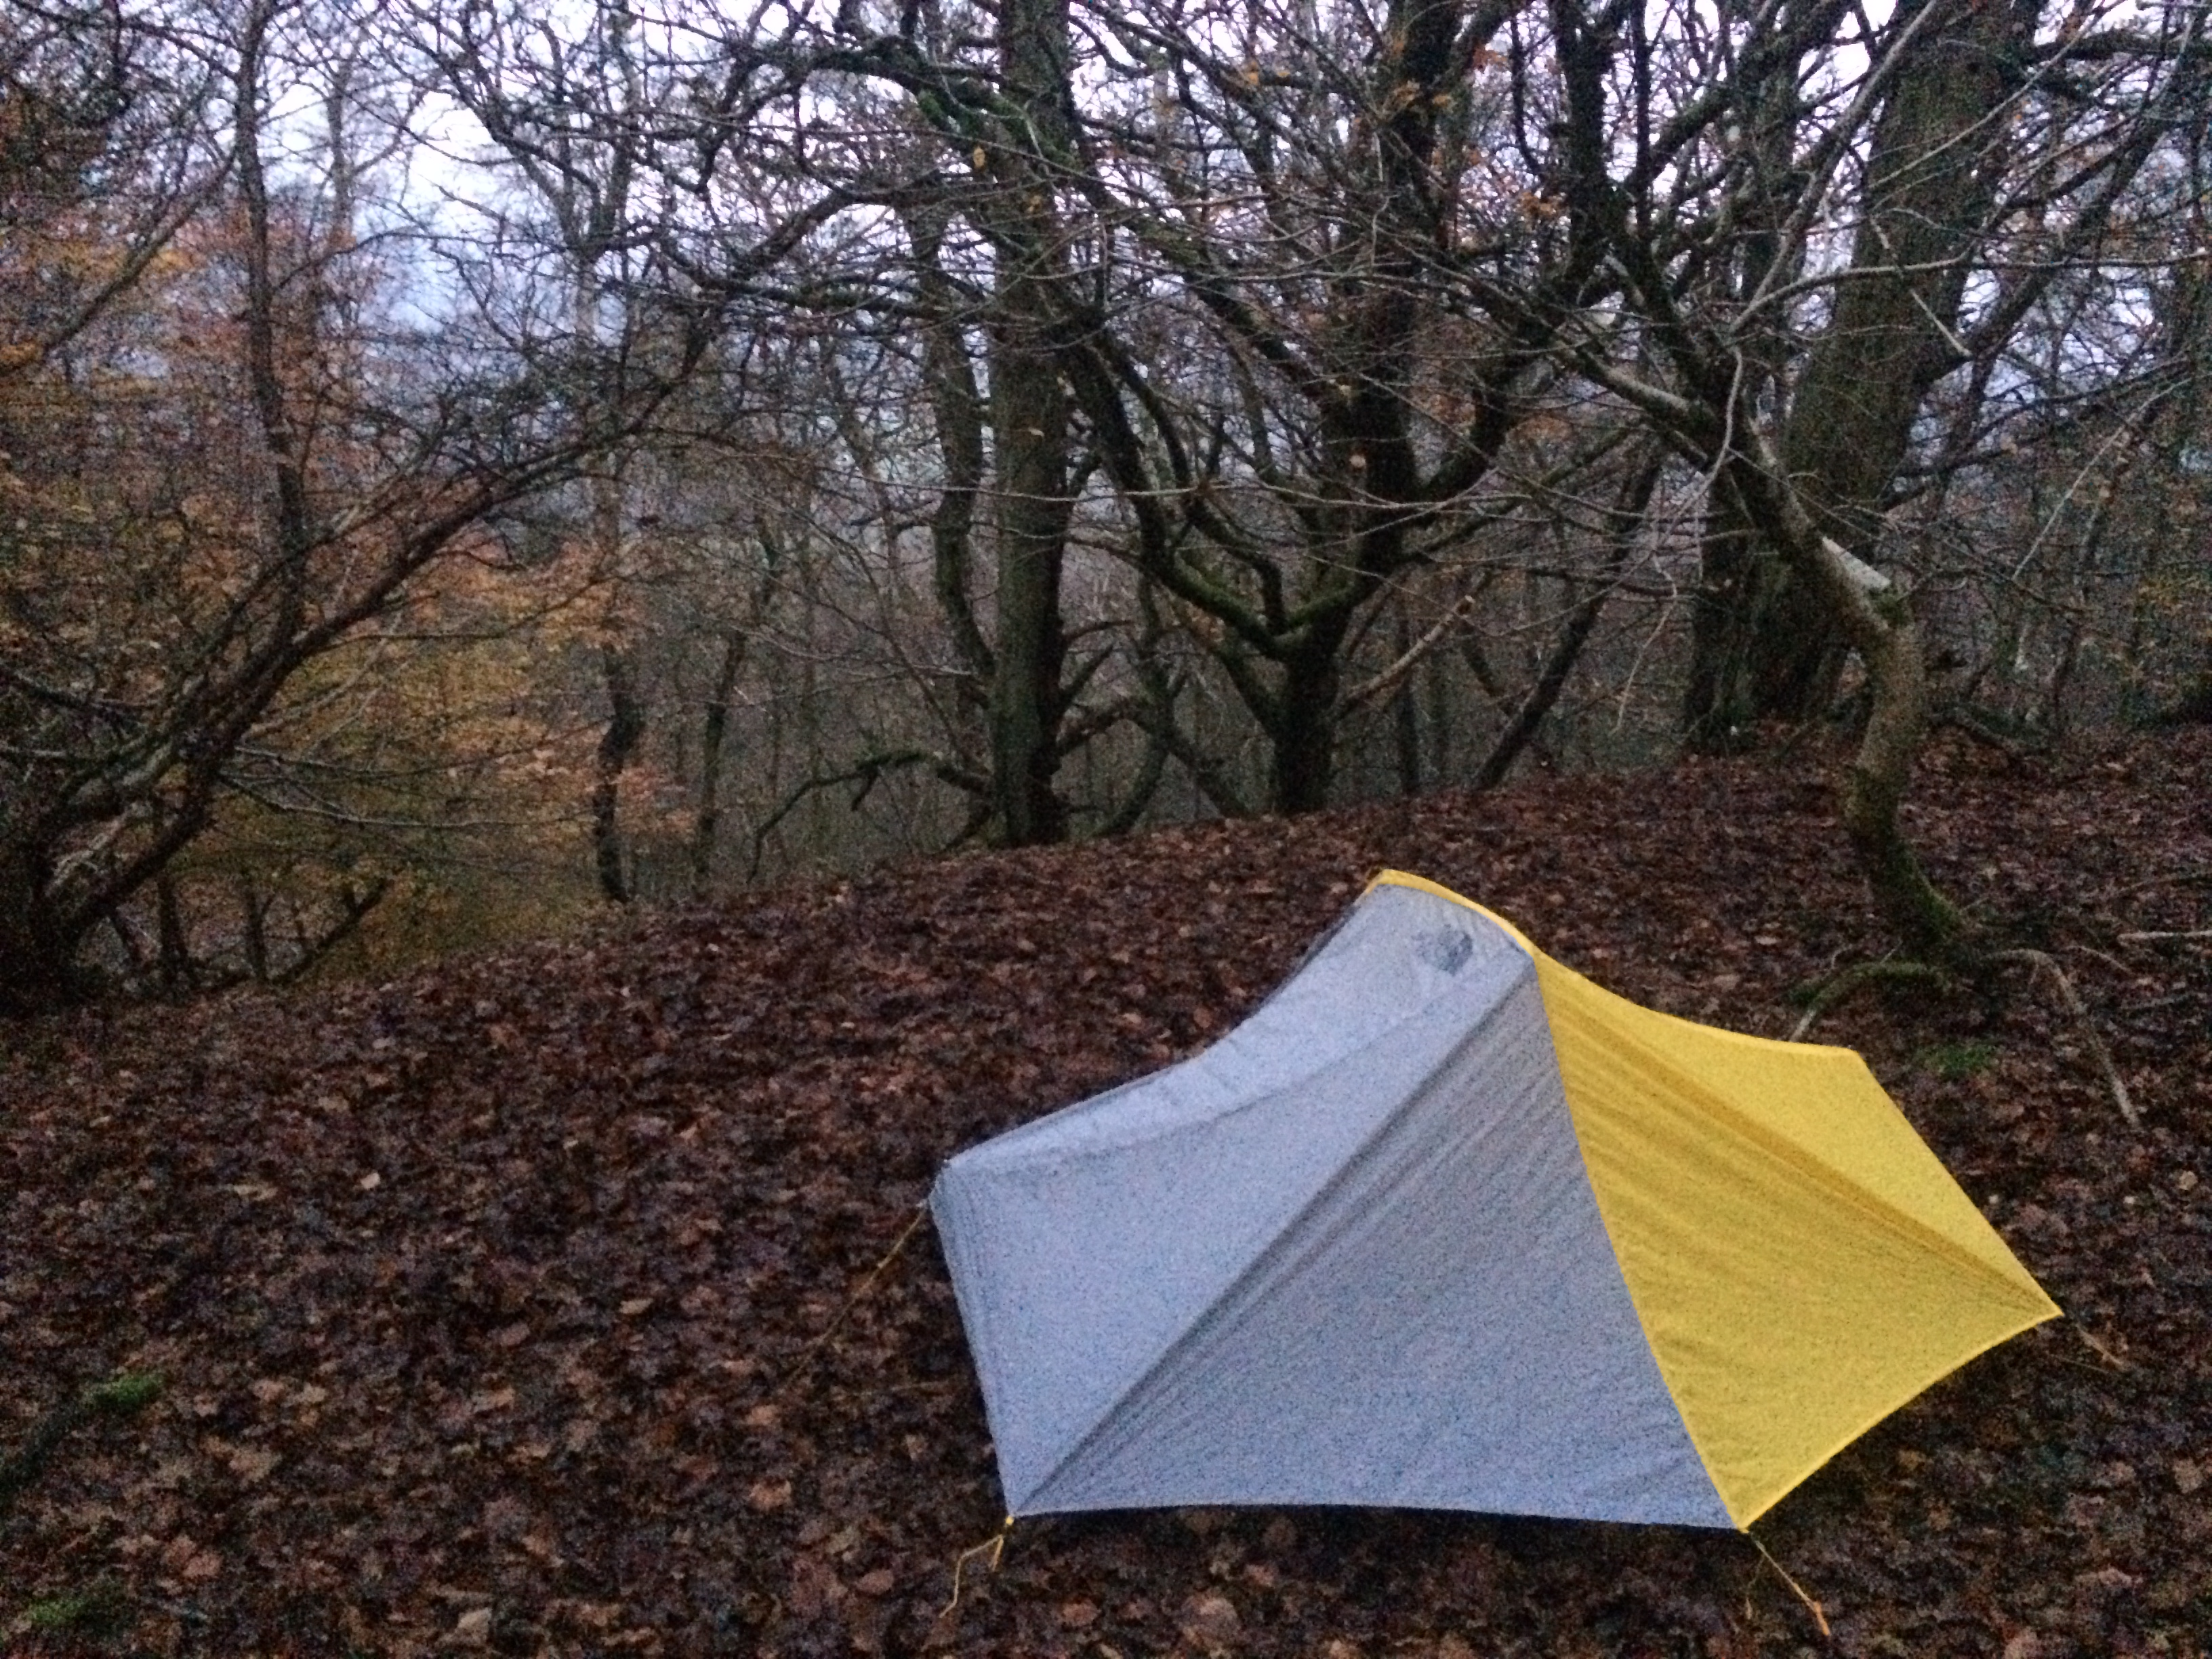 The North Face O2 one man tent (850g and it's like a palace in there)